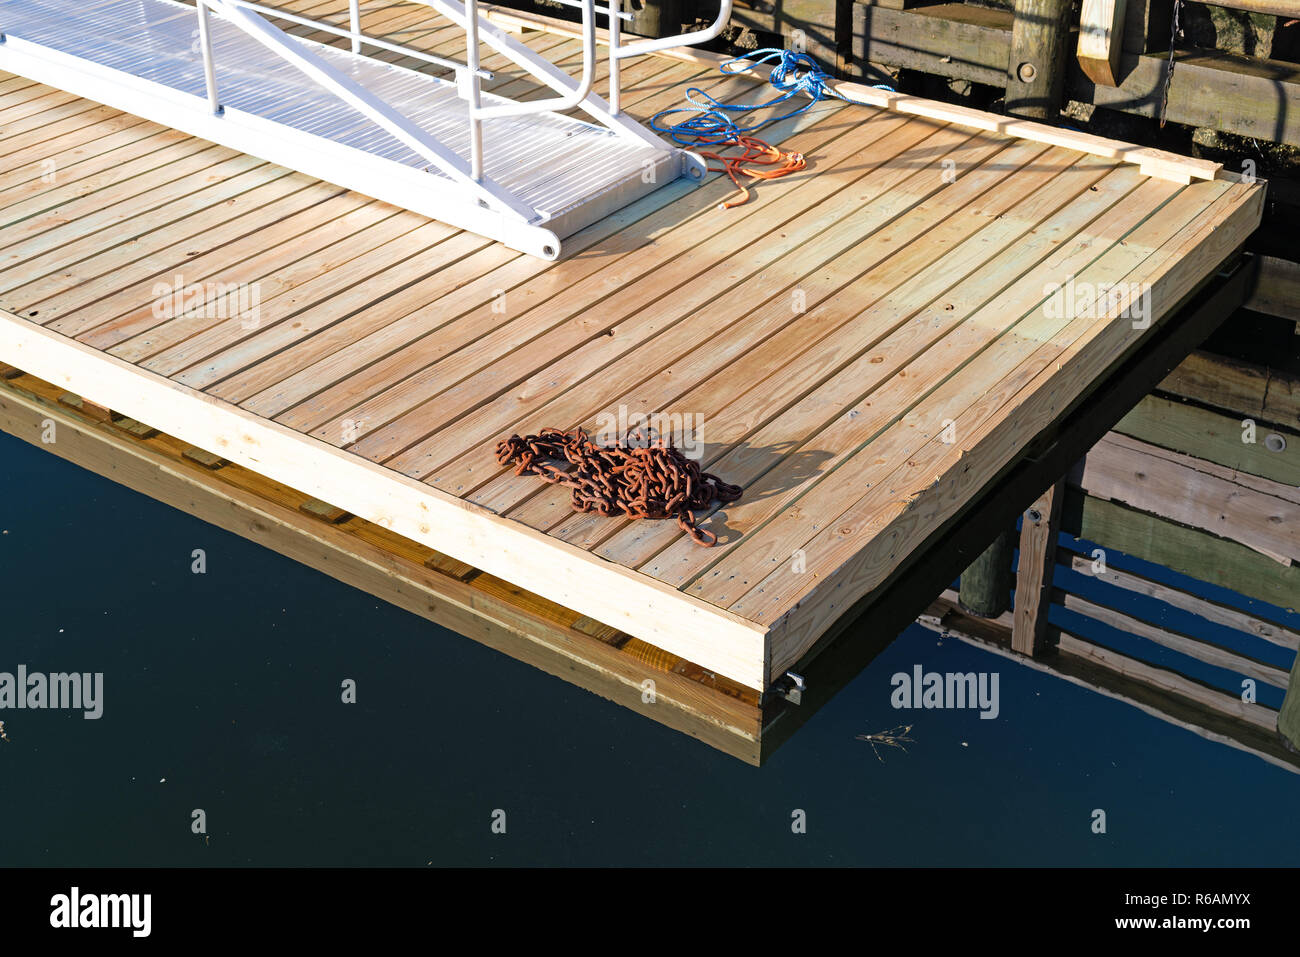 Newly build floating pier with an old chain and new metal walkway at Penobscot Bay at Searsport, Maine in the early morning light. - Stock Image